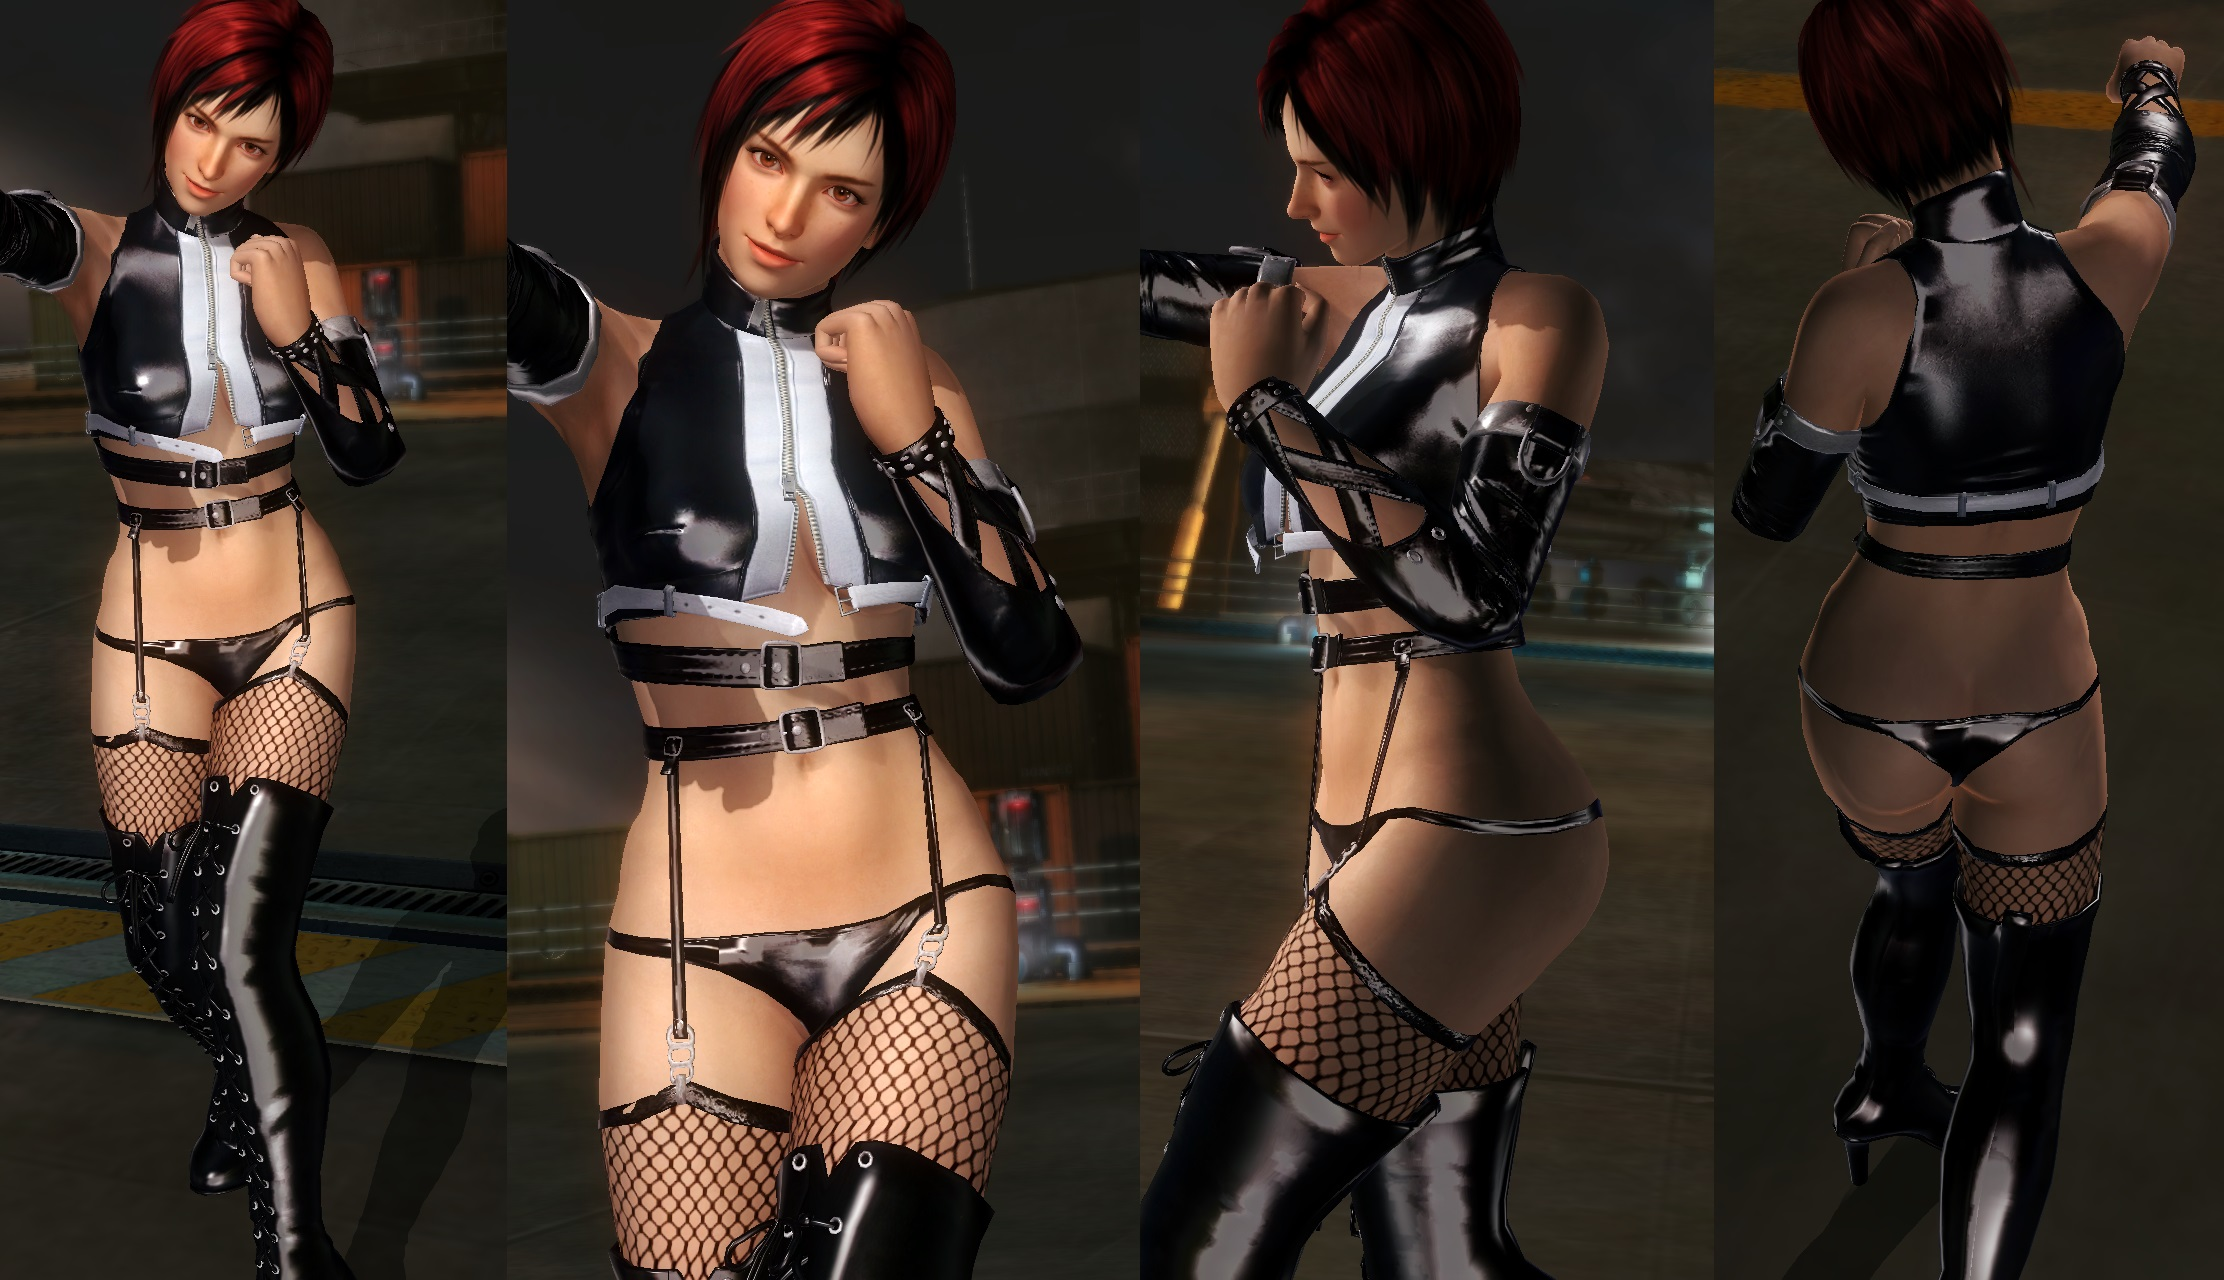 Mila shiny black thigh highs by funnybunny666